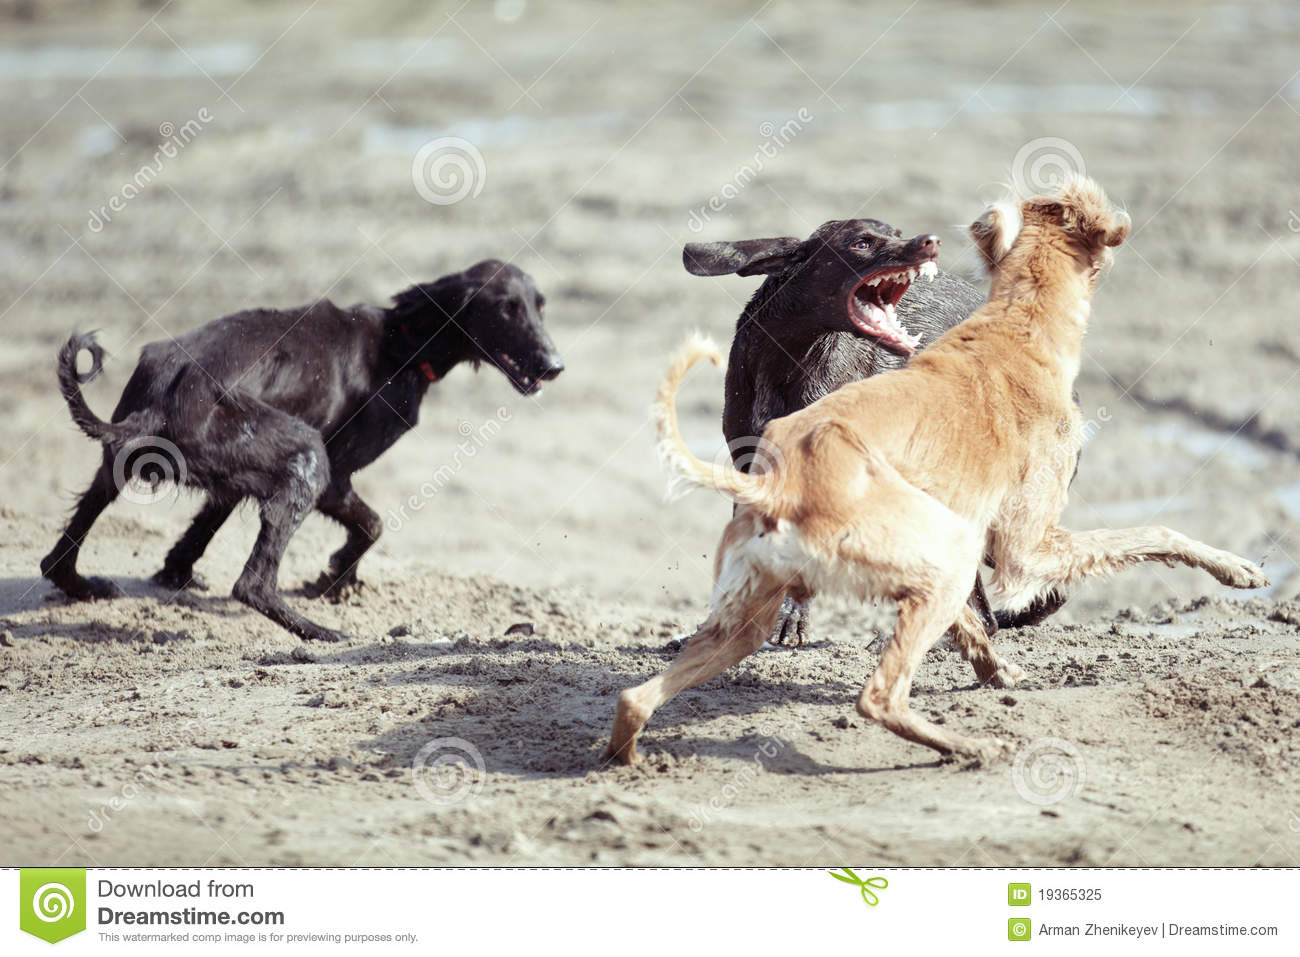 how to know if dogs are playing or fighting